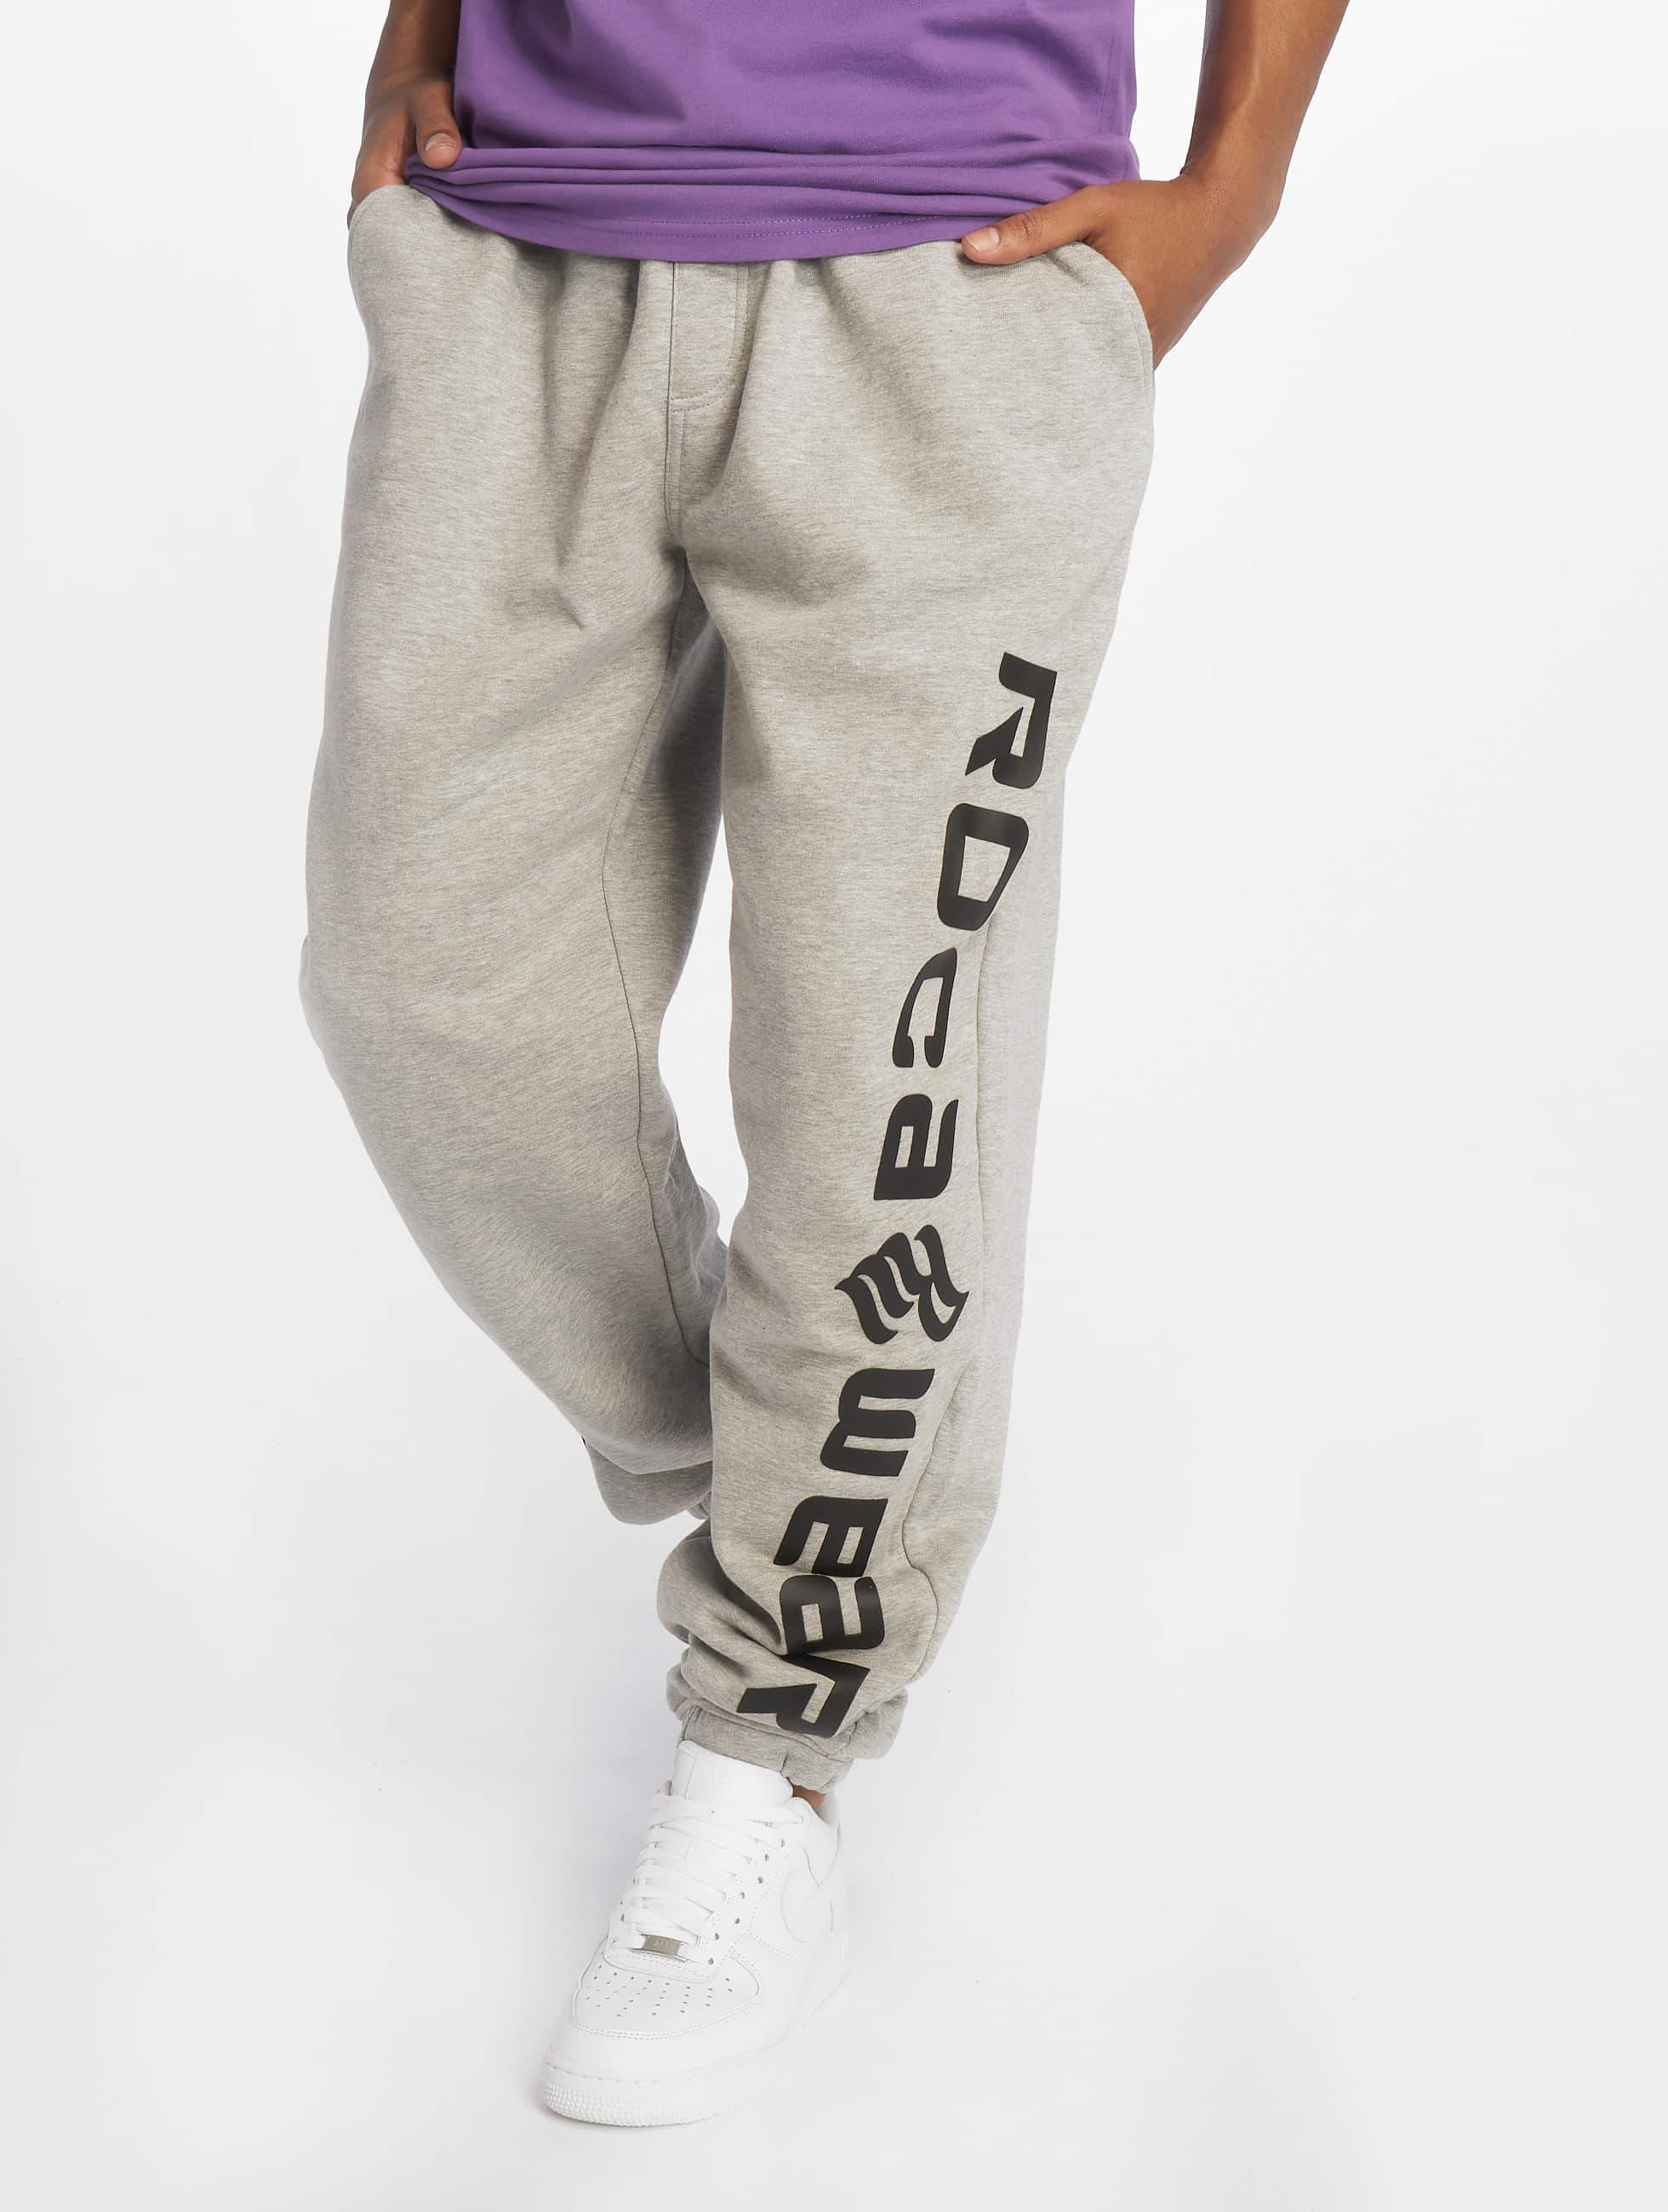 Rocawear / Sweat Pant Basic in grey XL